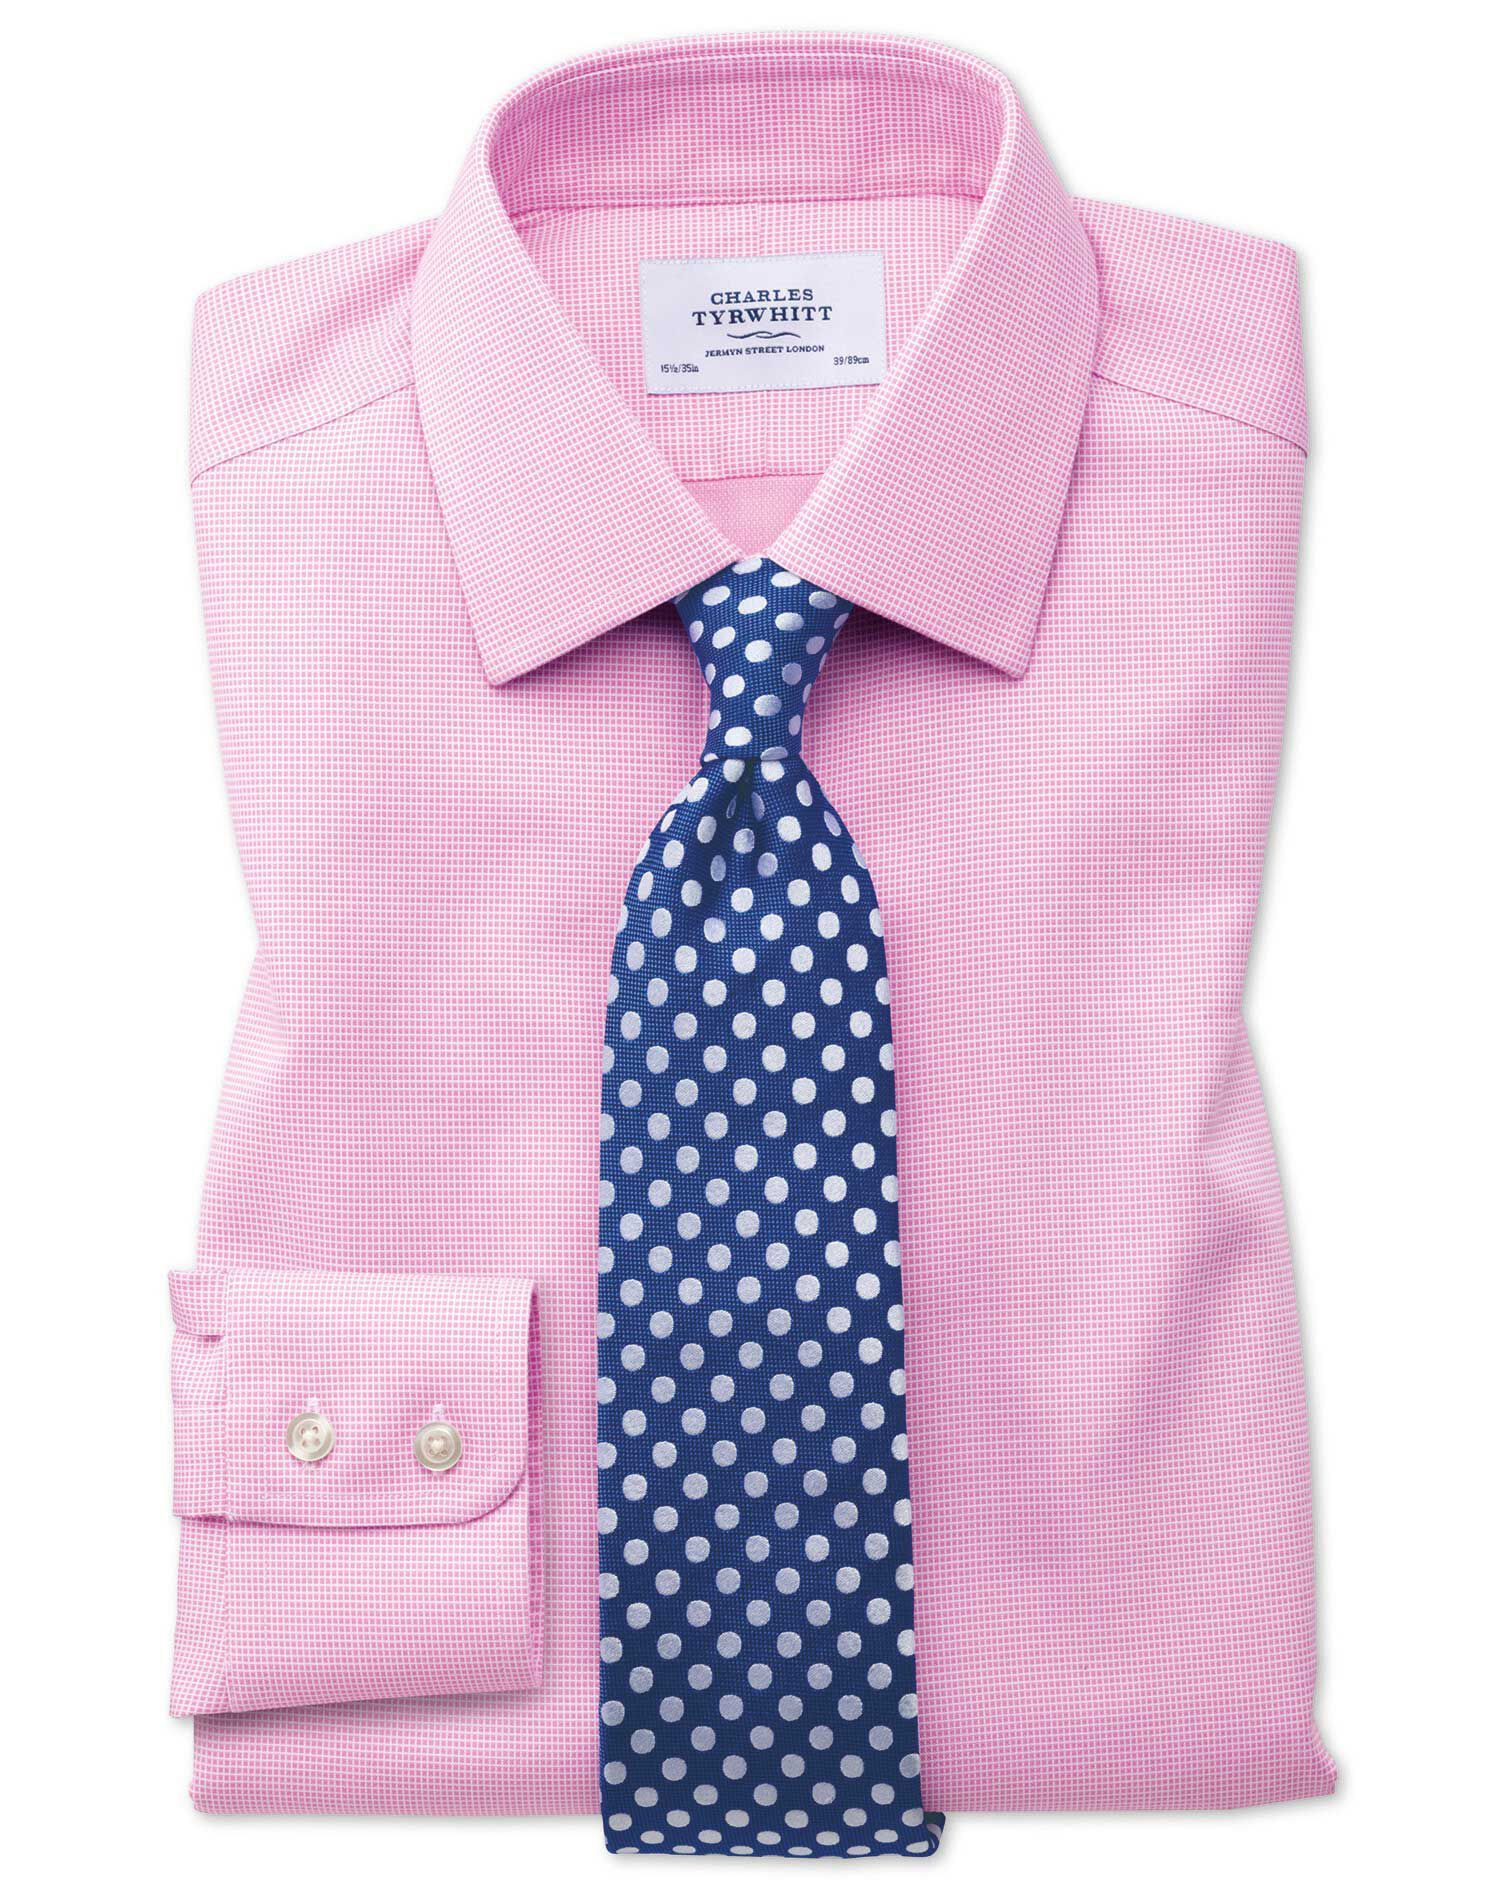 Extra Slim Fit Non-Iron Square Weave Pink Cotton Formal Shirt Single Cuff Size 16.5/35 by Charles Ty